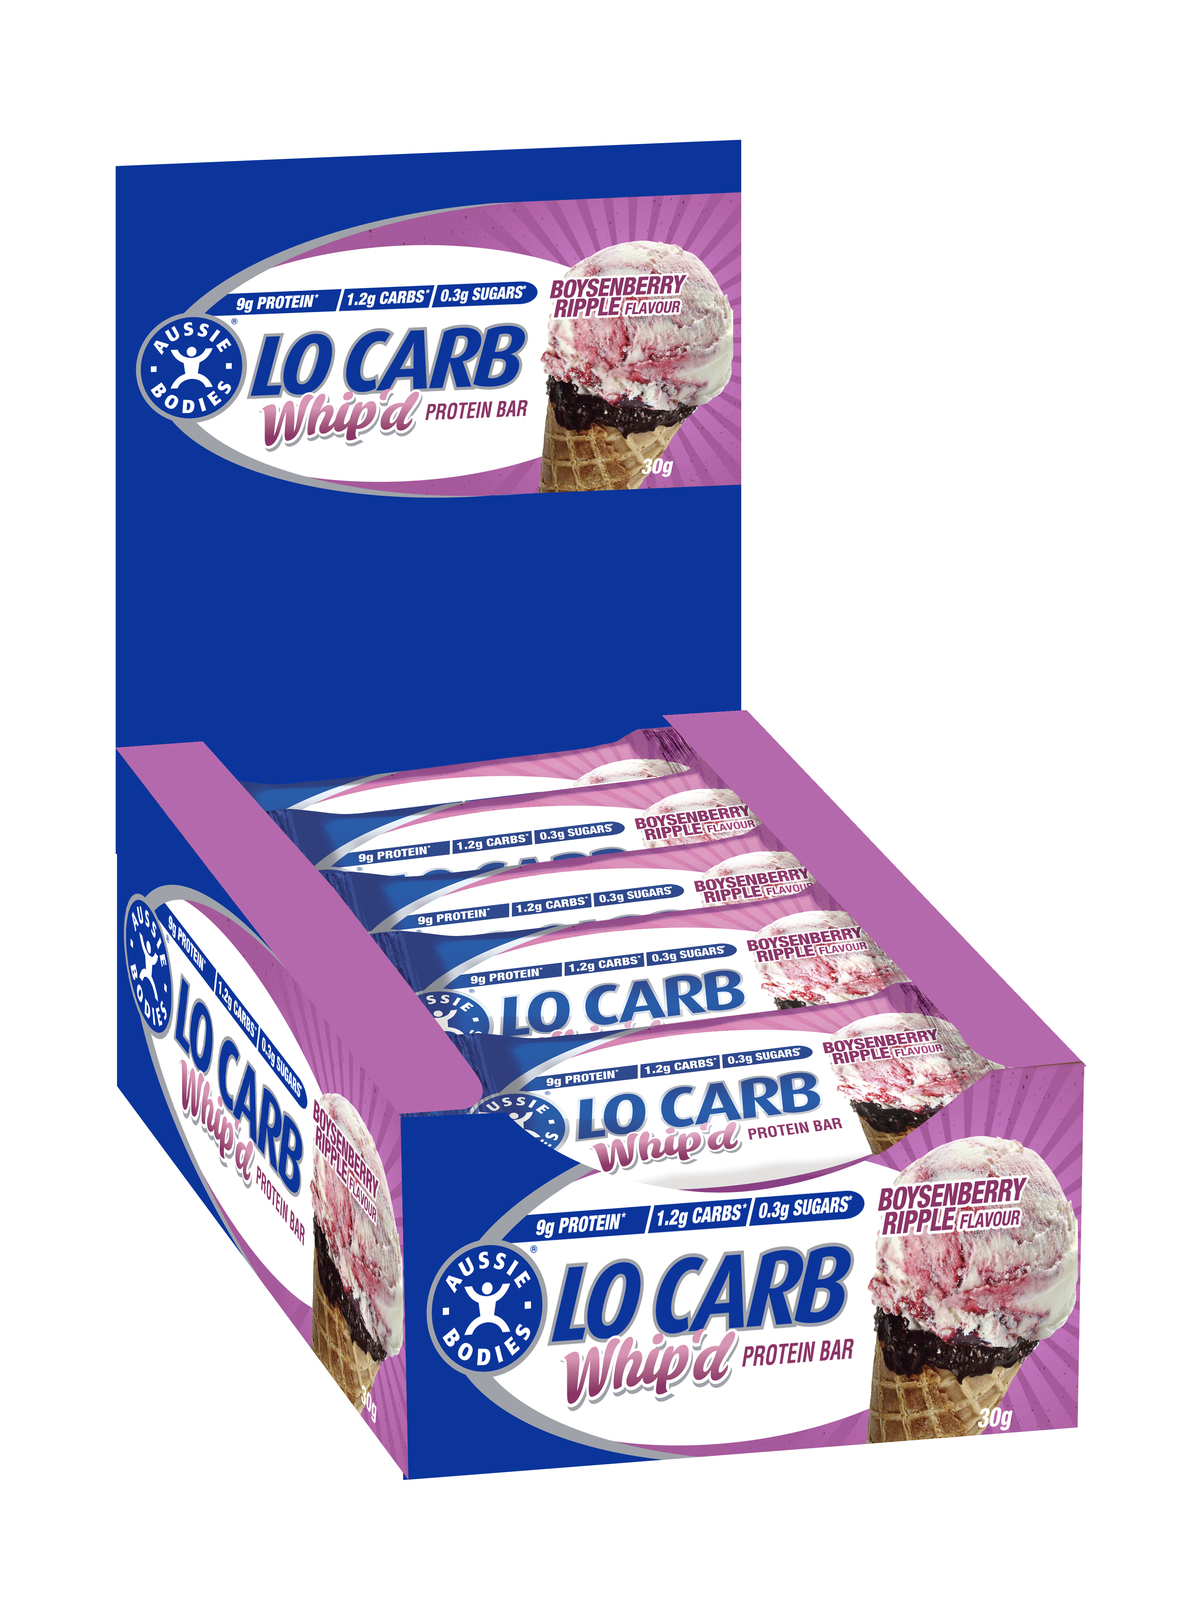 Aussie Bodies Lo Carb Protein Bars - Boysenberry Ripple (Box of 12) image